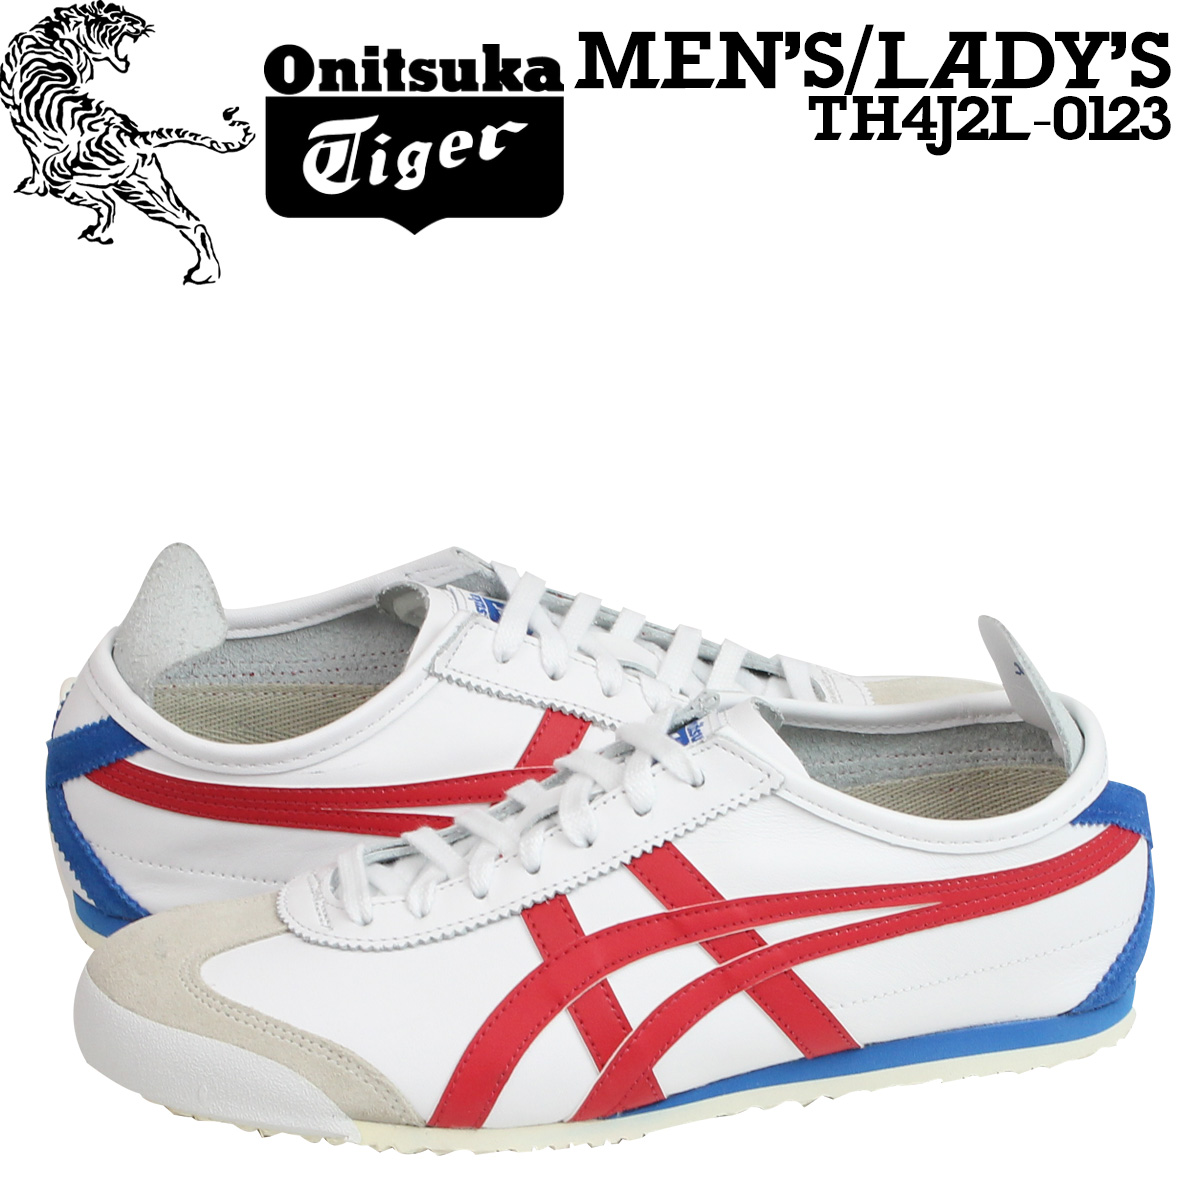 Sugar Online Shop  Onitsuka Tiger ASICs Onitsuka Tiger asics Mexico 66  sneaker MEXICO 66 TH4J 2L-0123 men s women s shoes white  aaab9cdbd148